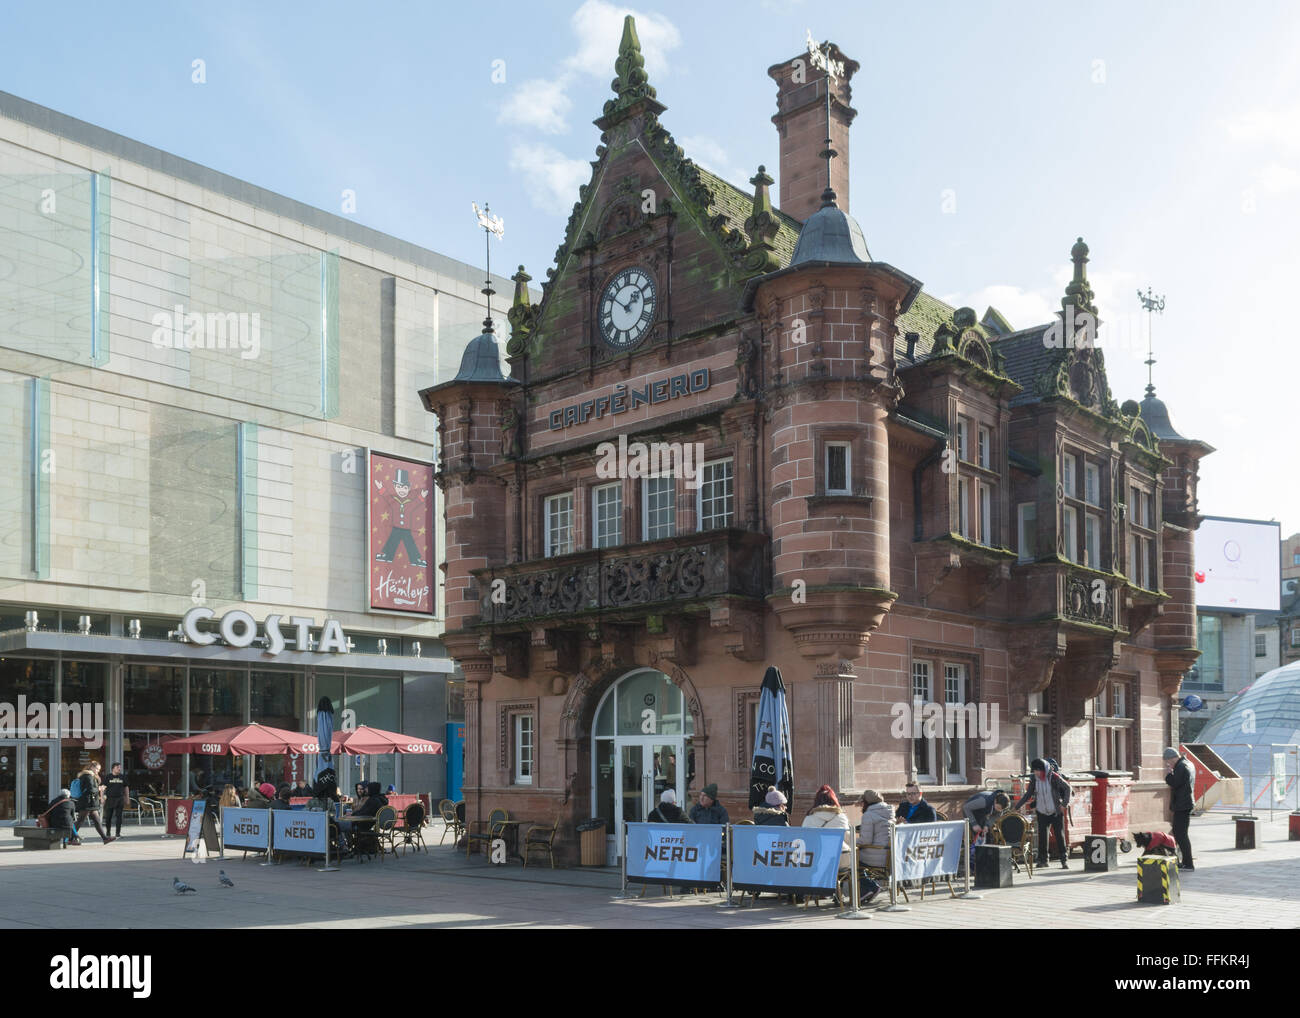 Caffe Nero Coffee Chain In The Former St Enoch Subway